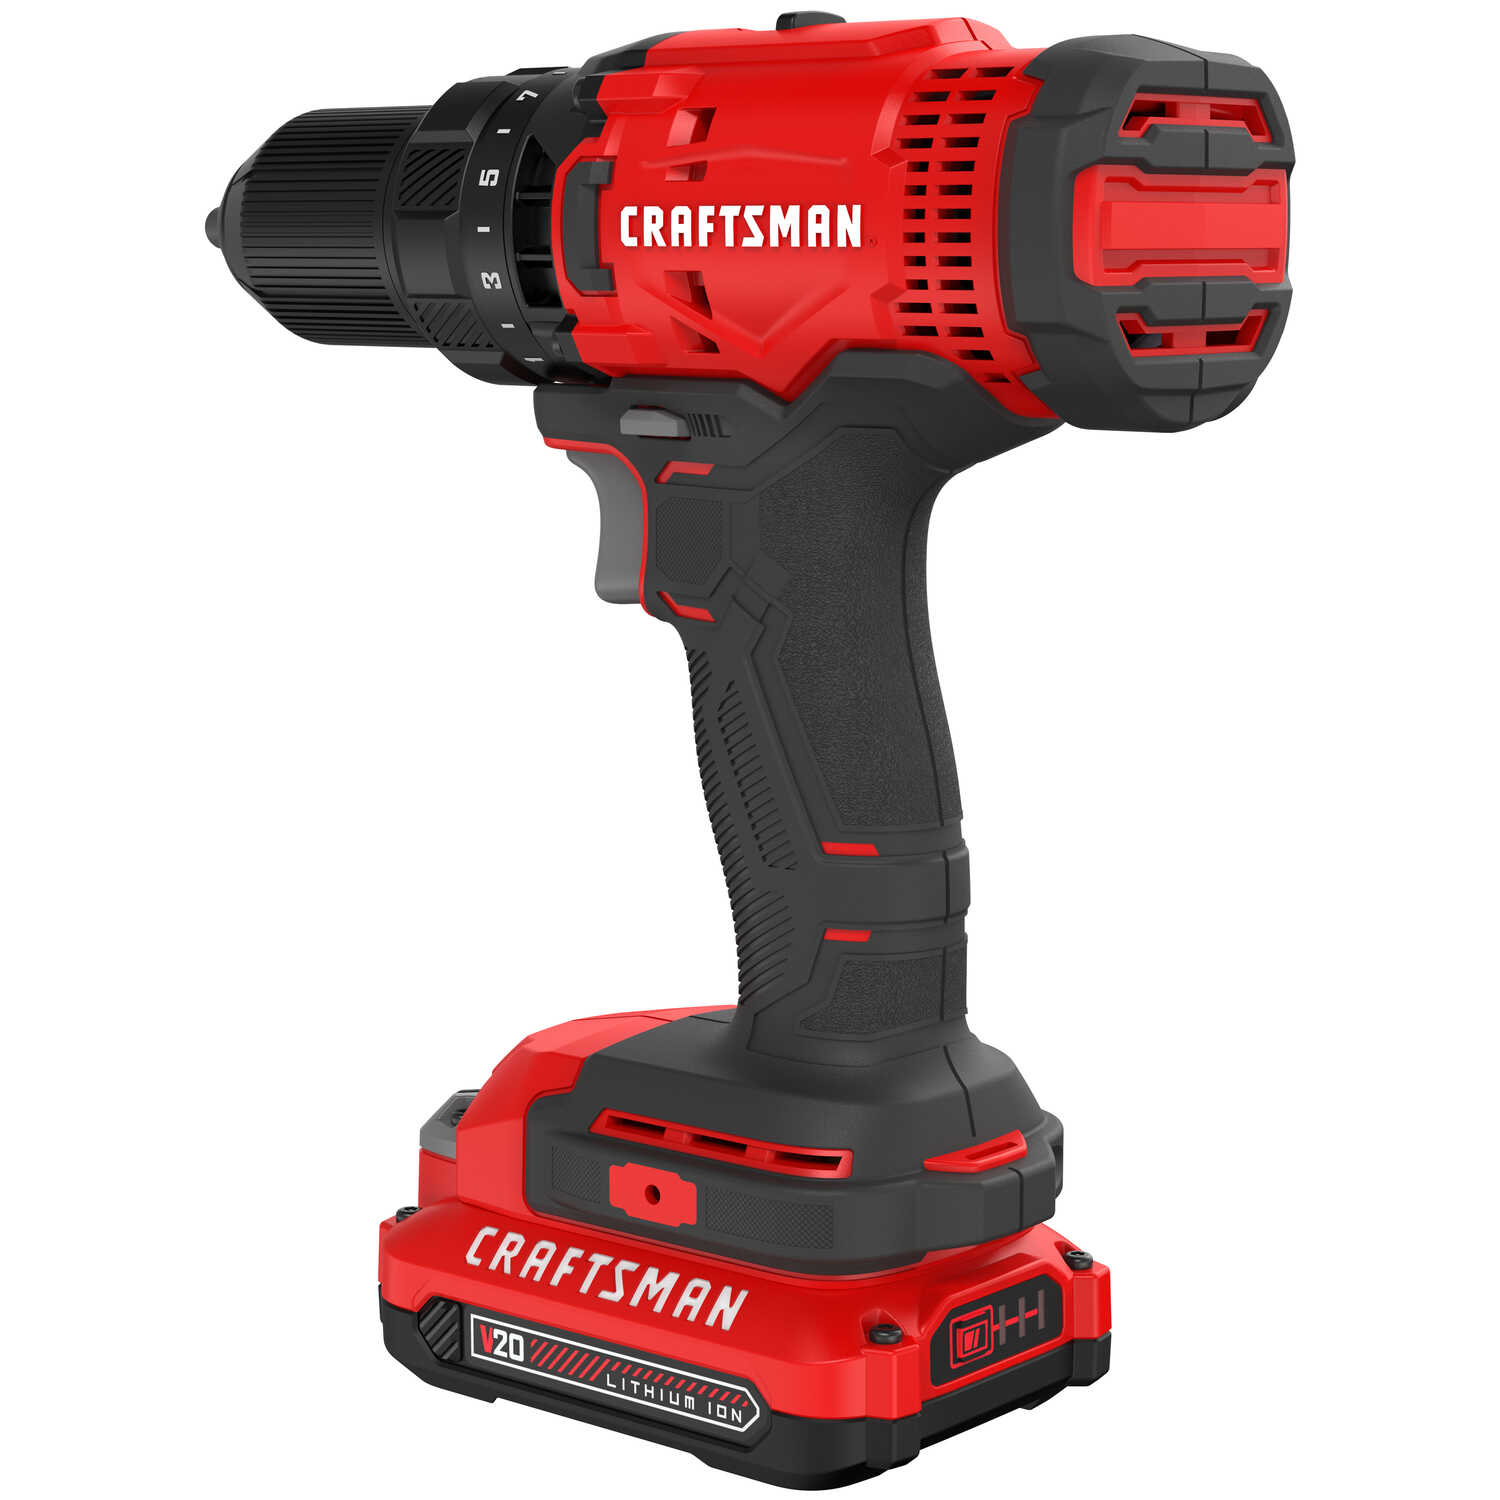 Craftsman  20V MAX  20 volt Brushed  Cordless Drill/Driver  1/2 in. 1500 rpm Kit 280 UWO